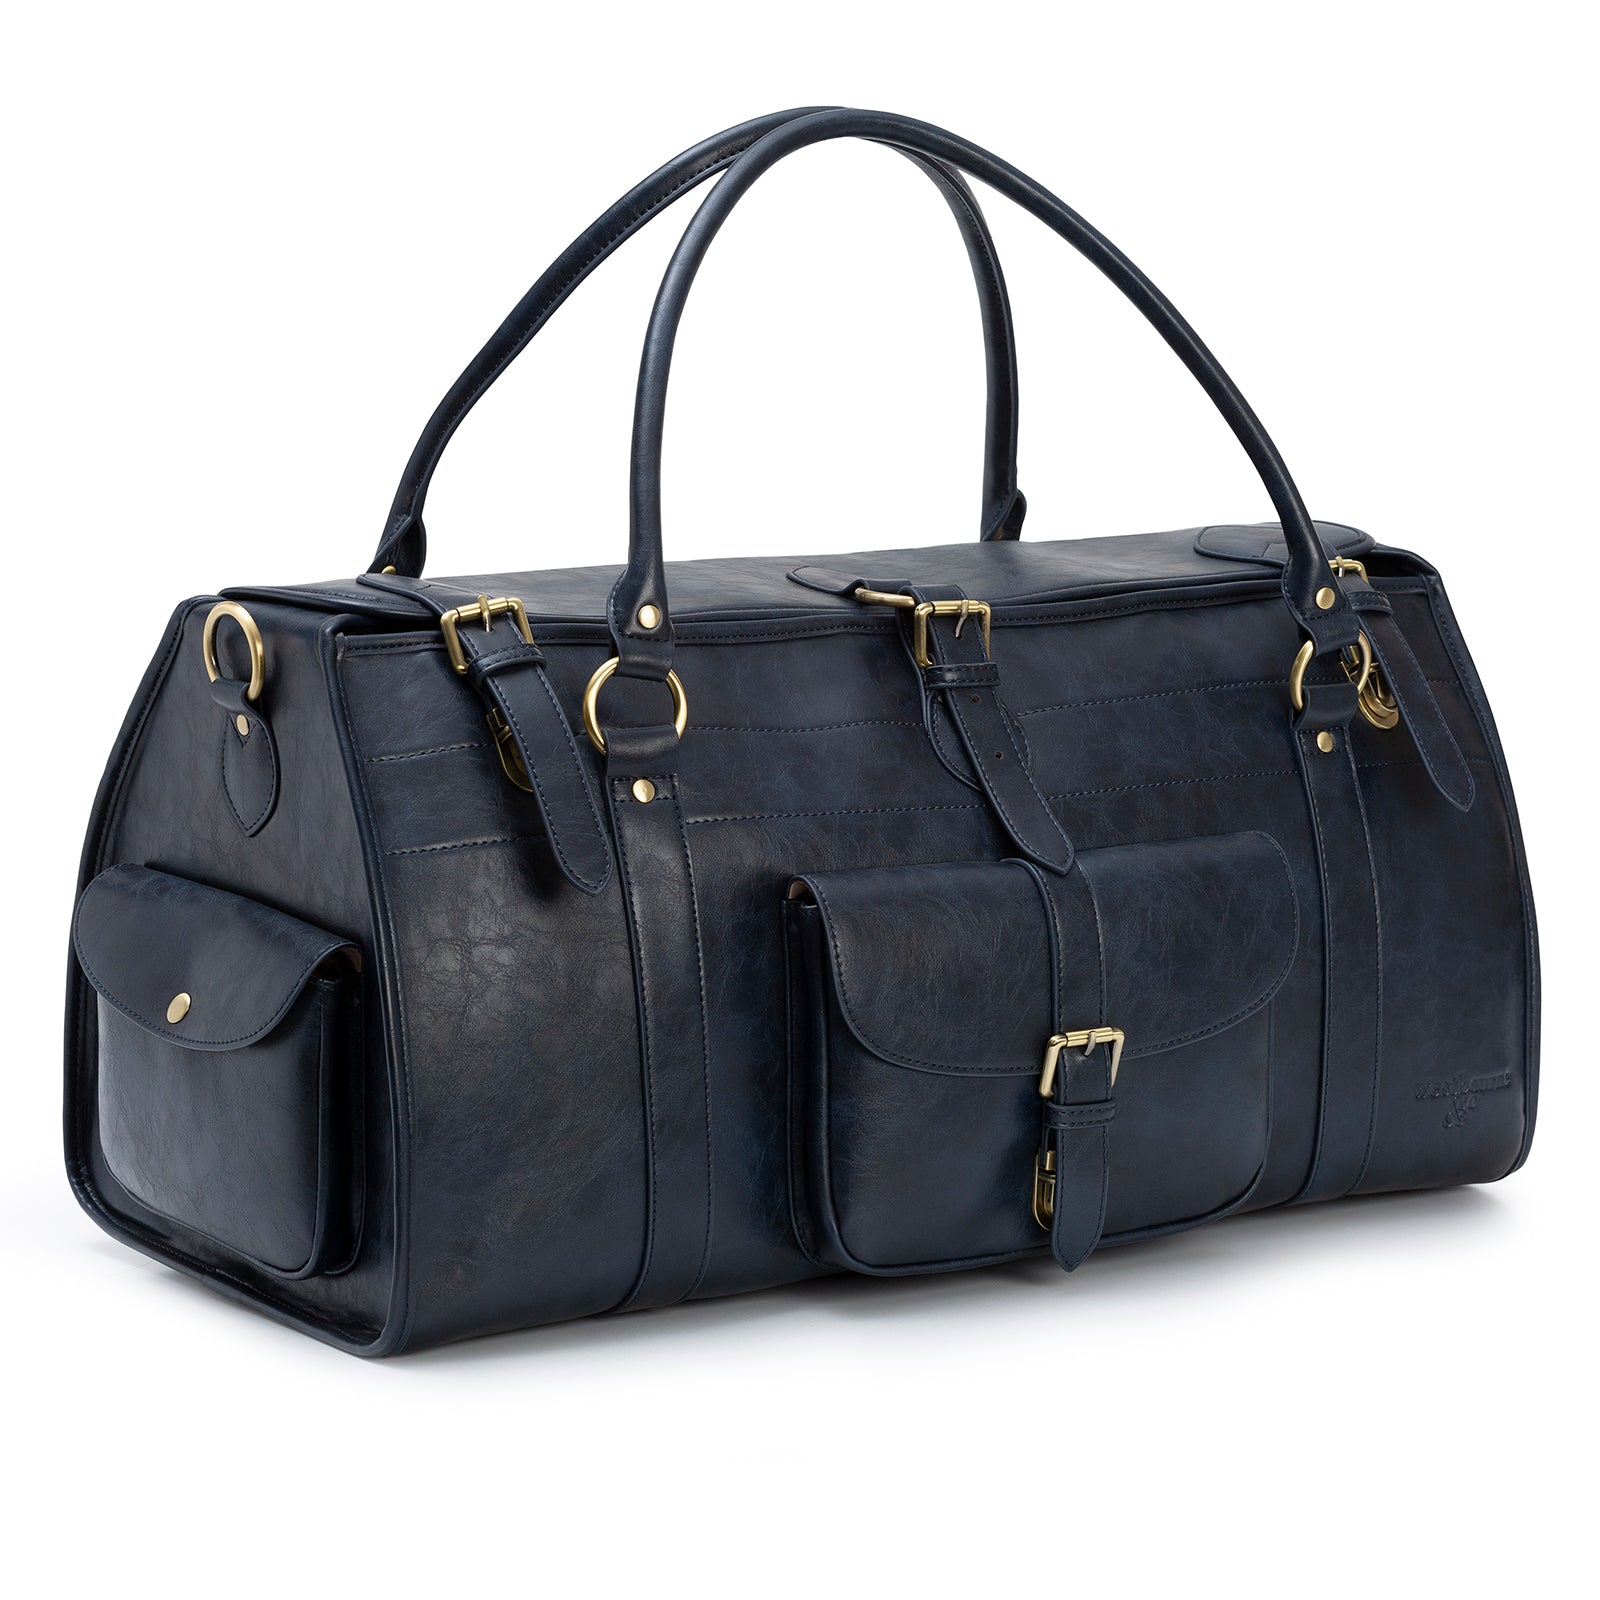 Kensington travel bag